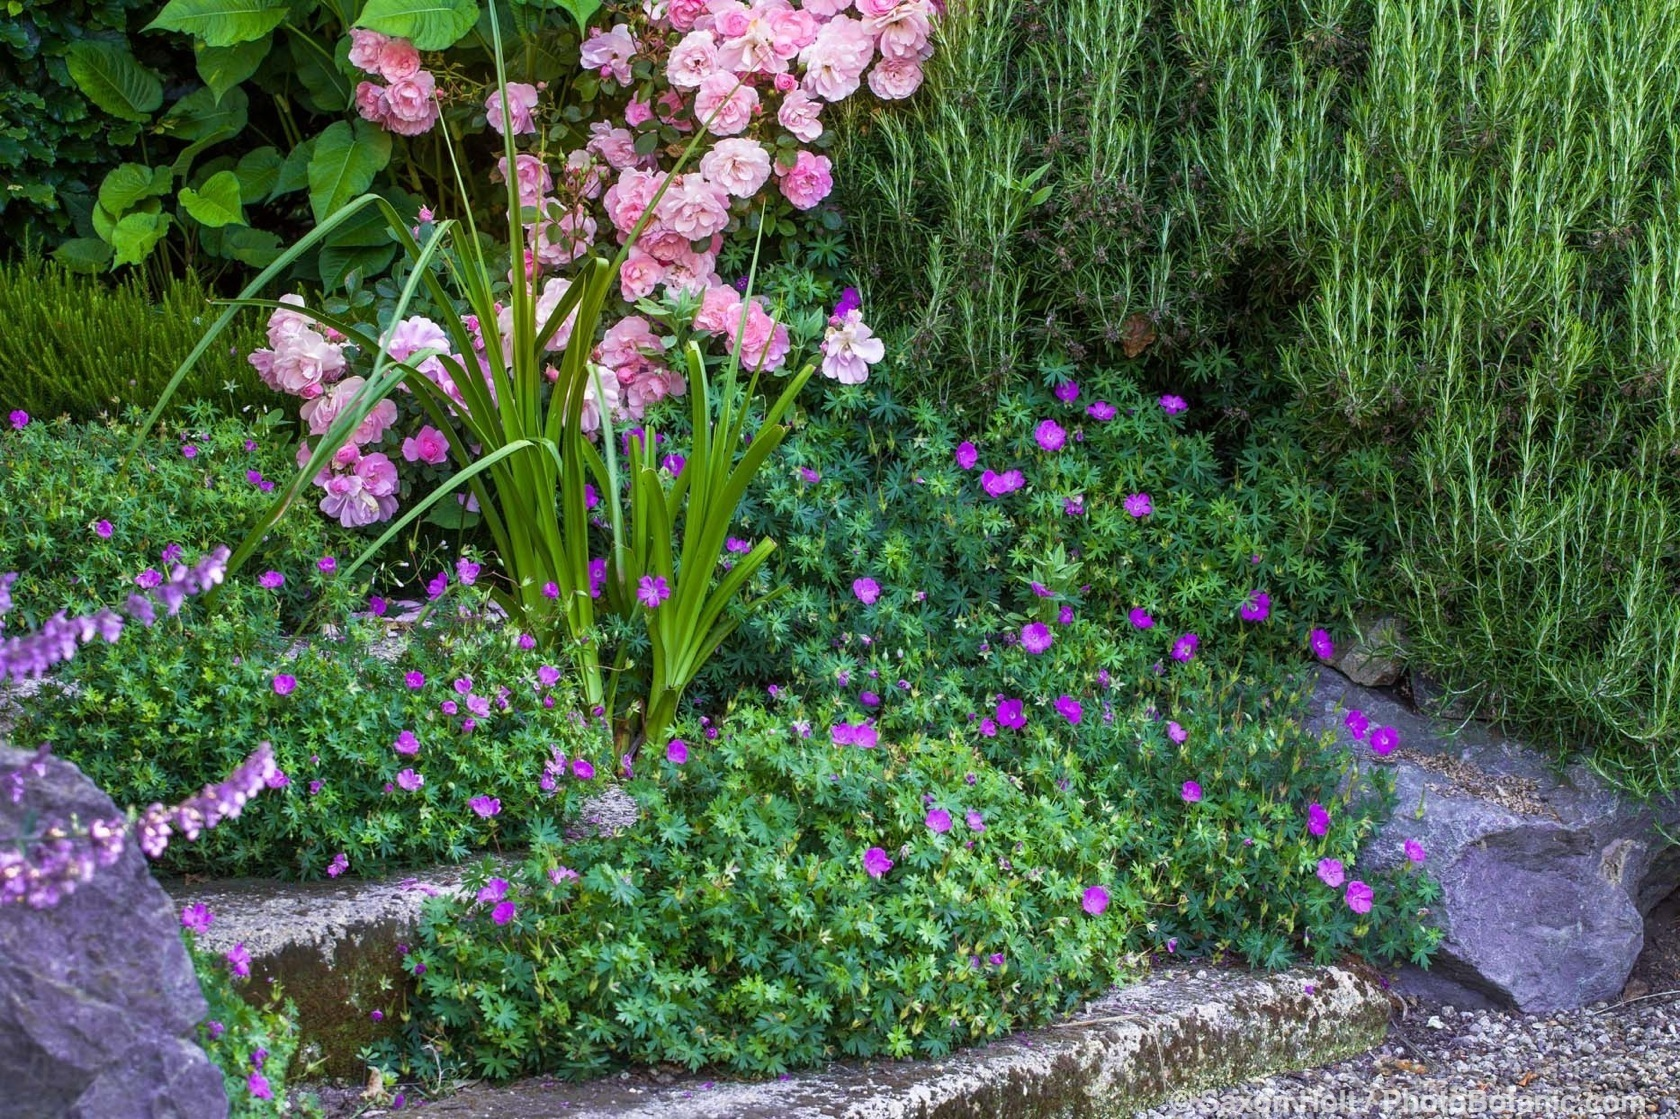 Pink flowering shrub rose 'Cornelia' in mixed border with rosemary and  flowering geranium sanguineum sprawling groundcover in cracks of stone step path; Gary Ratway garden